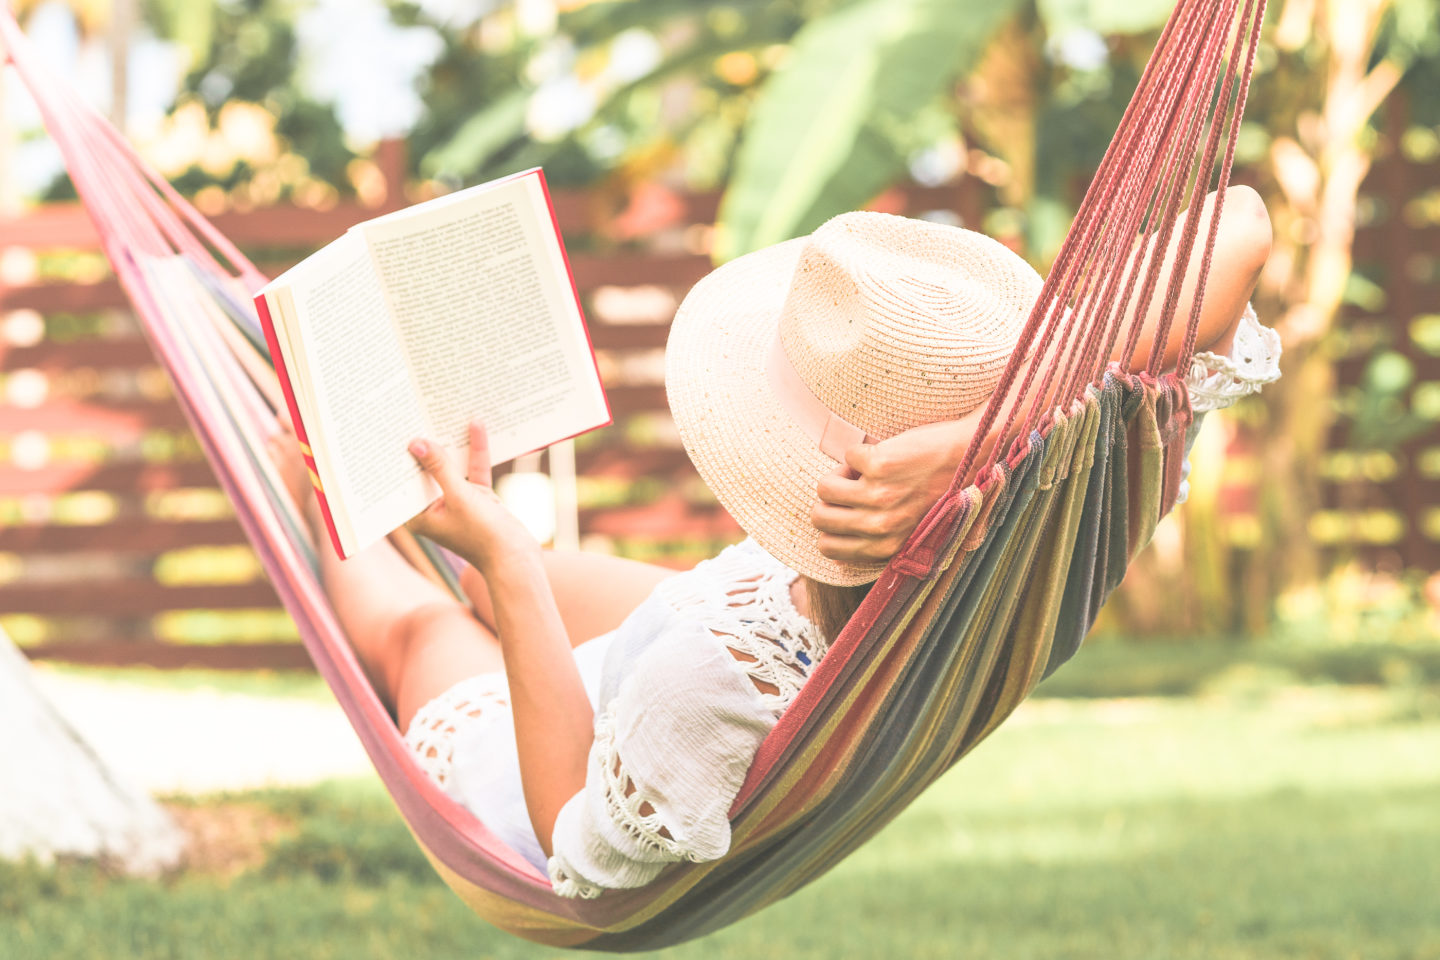 WHY TAKING TIME OFF IS HEALTHY